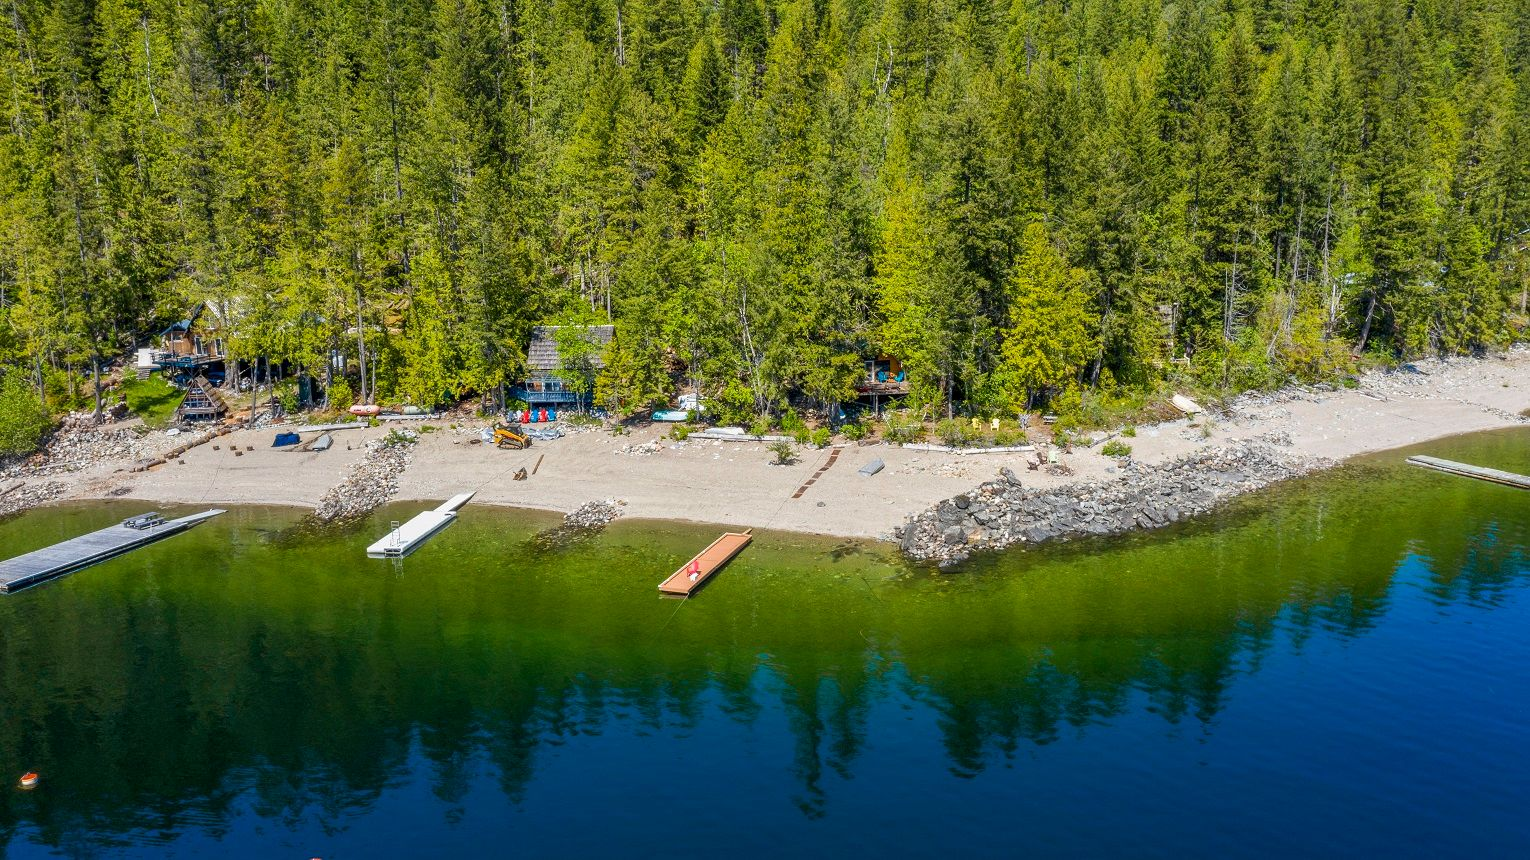 Main Photo:  in Anstey Arm: Anstey Arm Bay House for sale (SHUSWAP LAKE/ANSTEY ARM)  : MLS®# 10232070